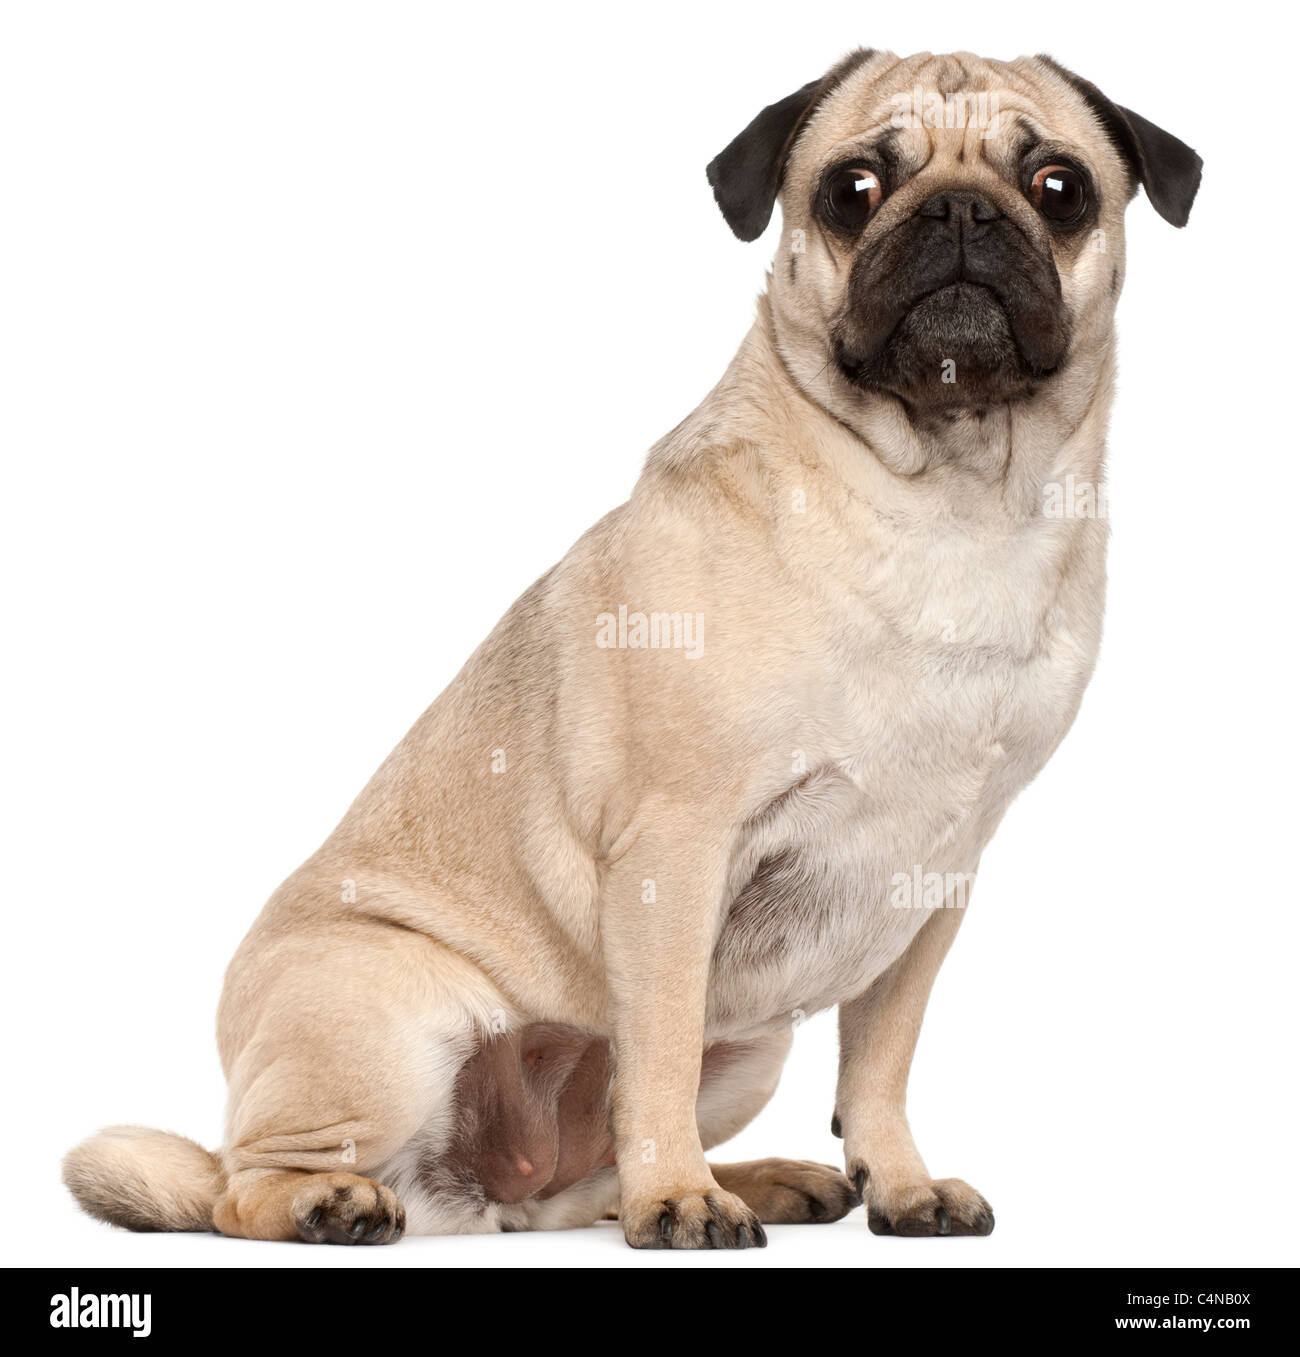 Pug, 3 years old, sitting in front of white background - Stock Image